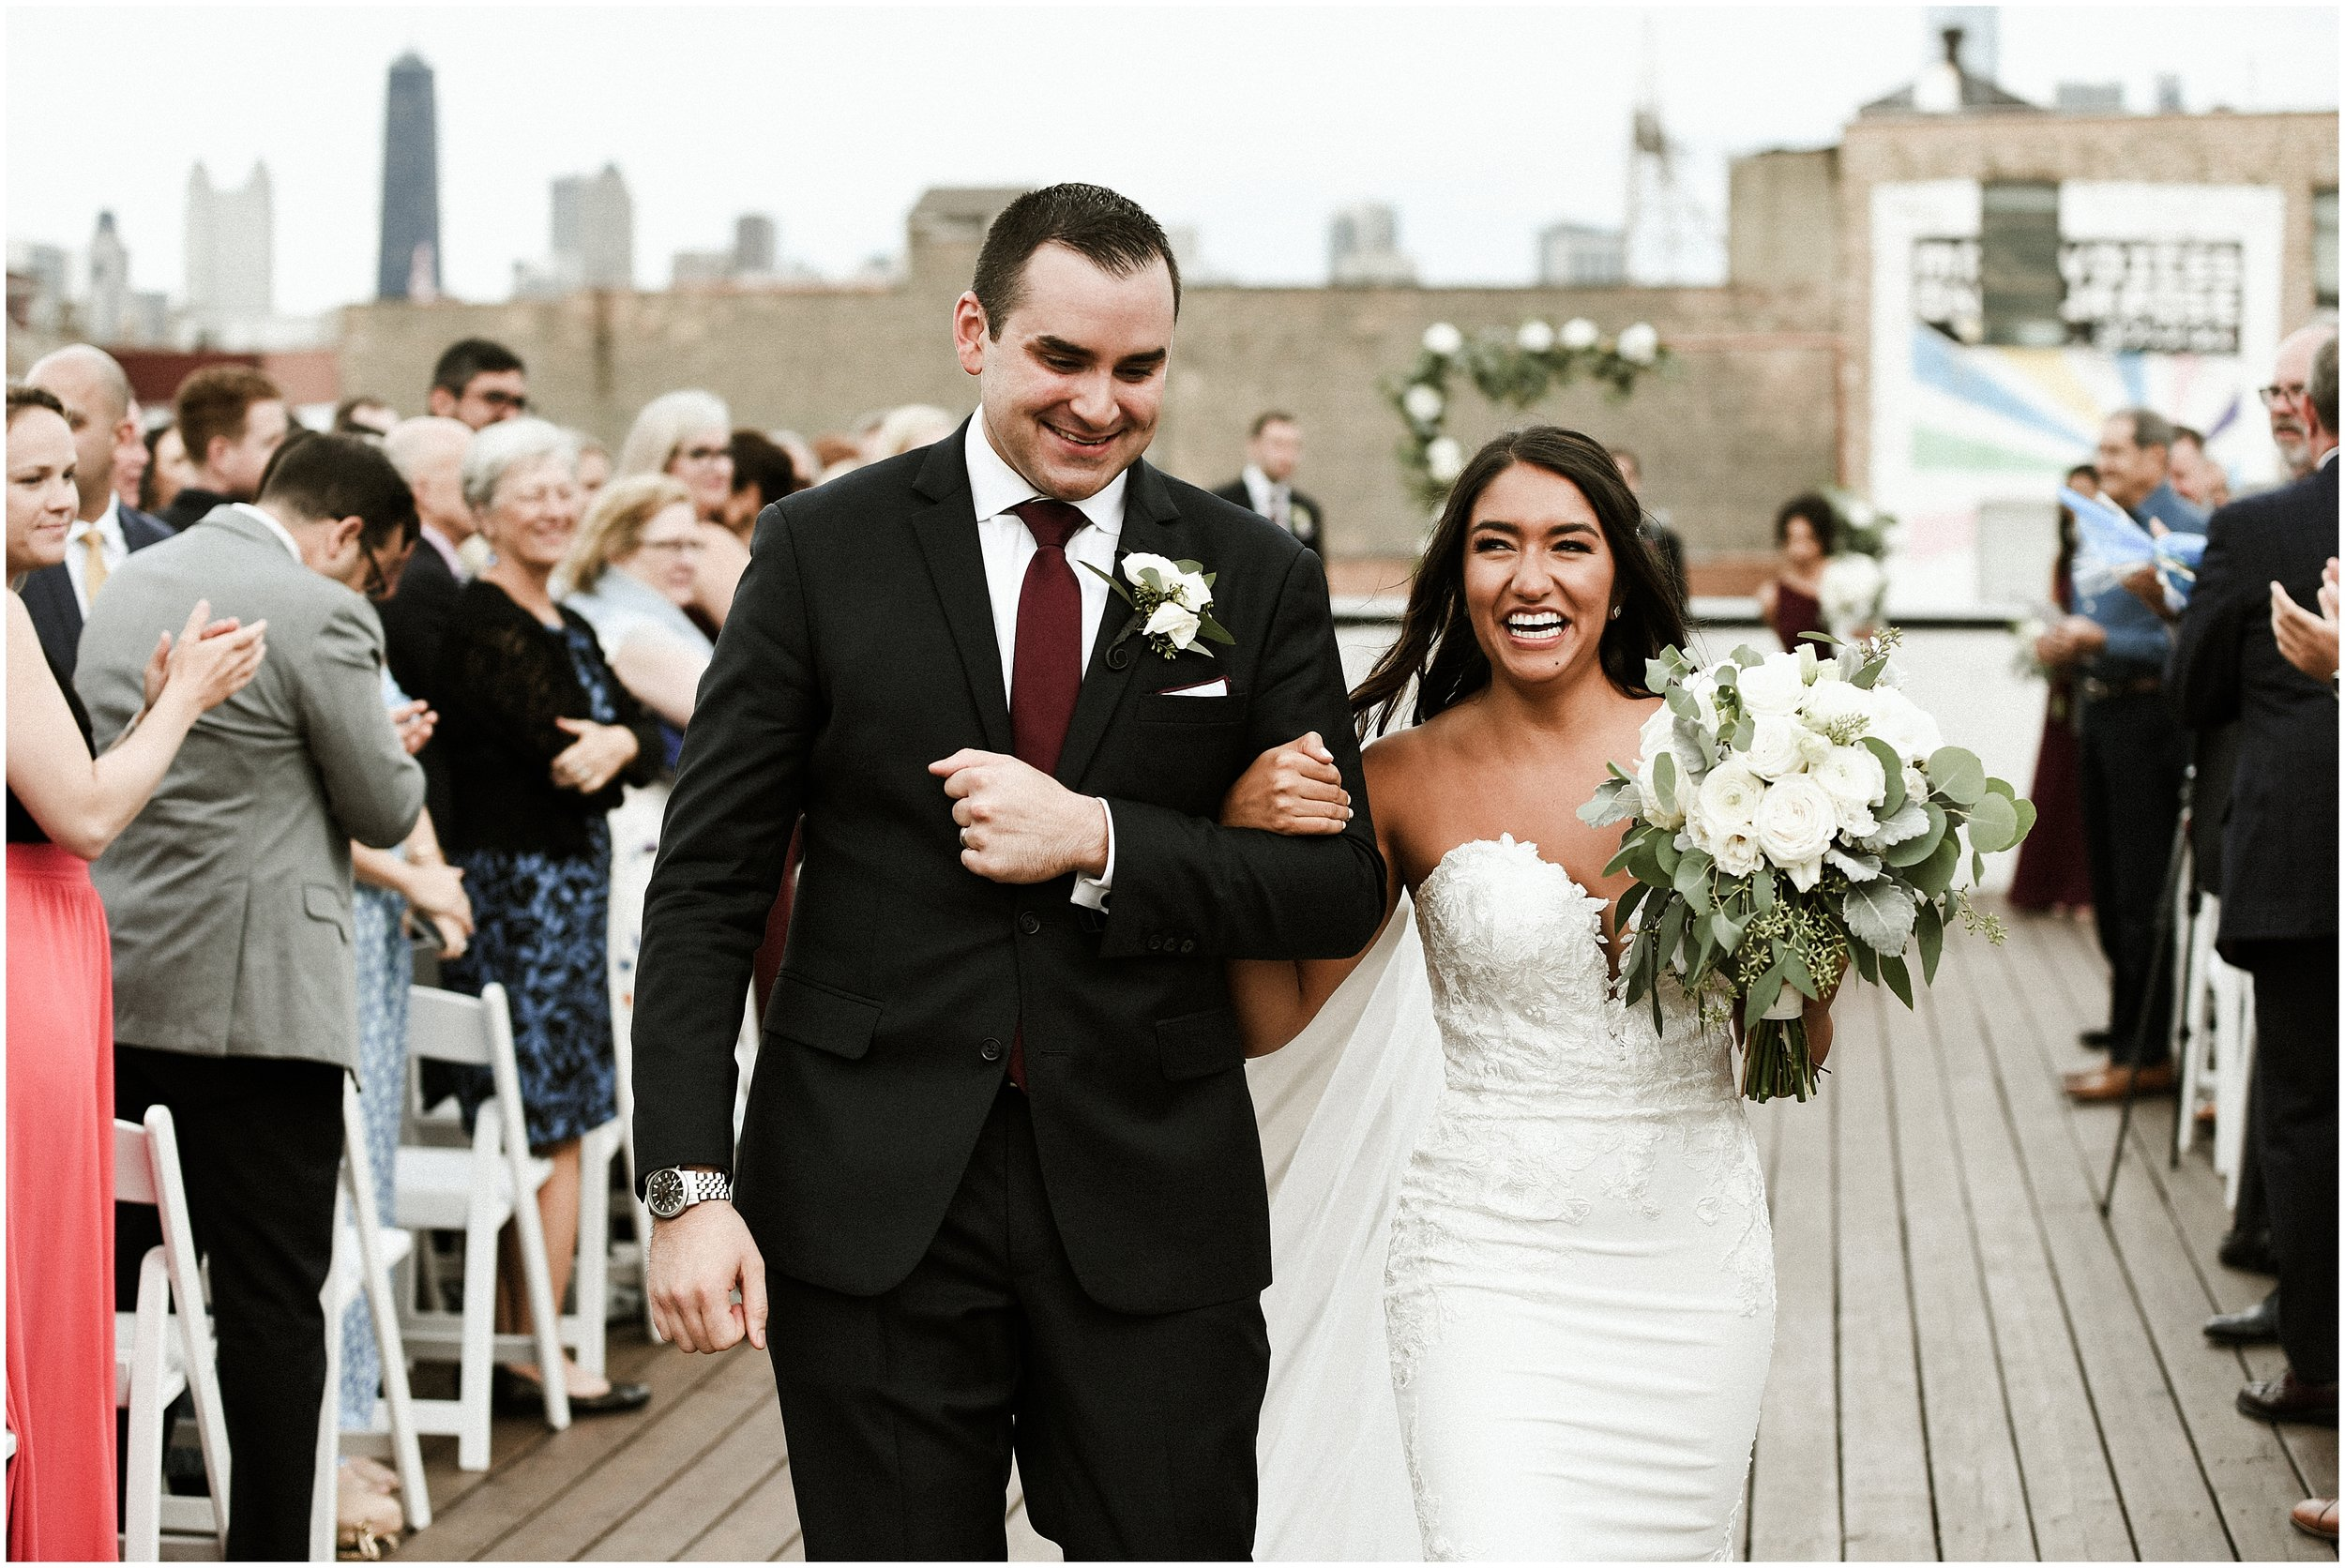 Candace Sims Photography | Mj And Kevin's Modern Romantic City Wedding | The Westin Chicago Northshore And Ignite Glass Studios | Chicago, IL | Naperville Wedding Photographer